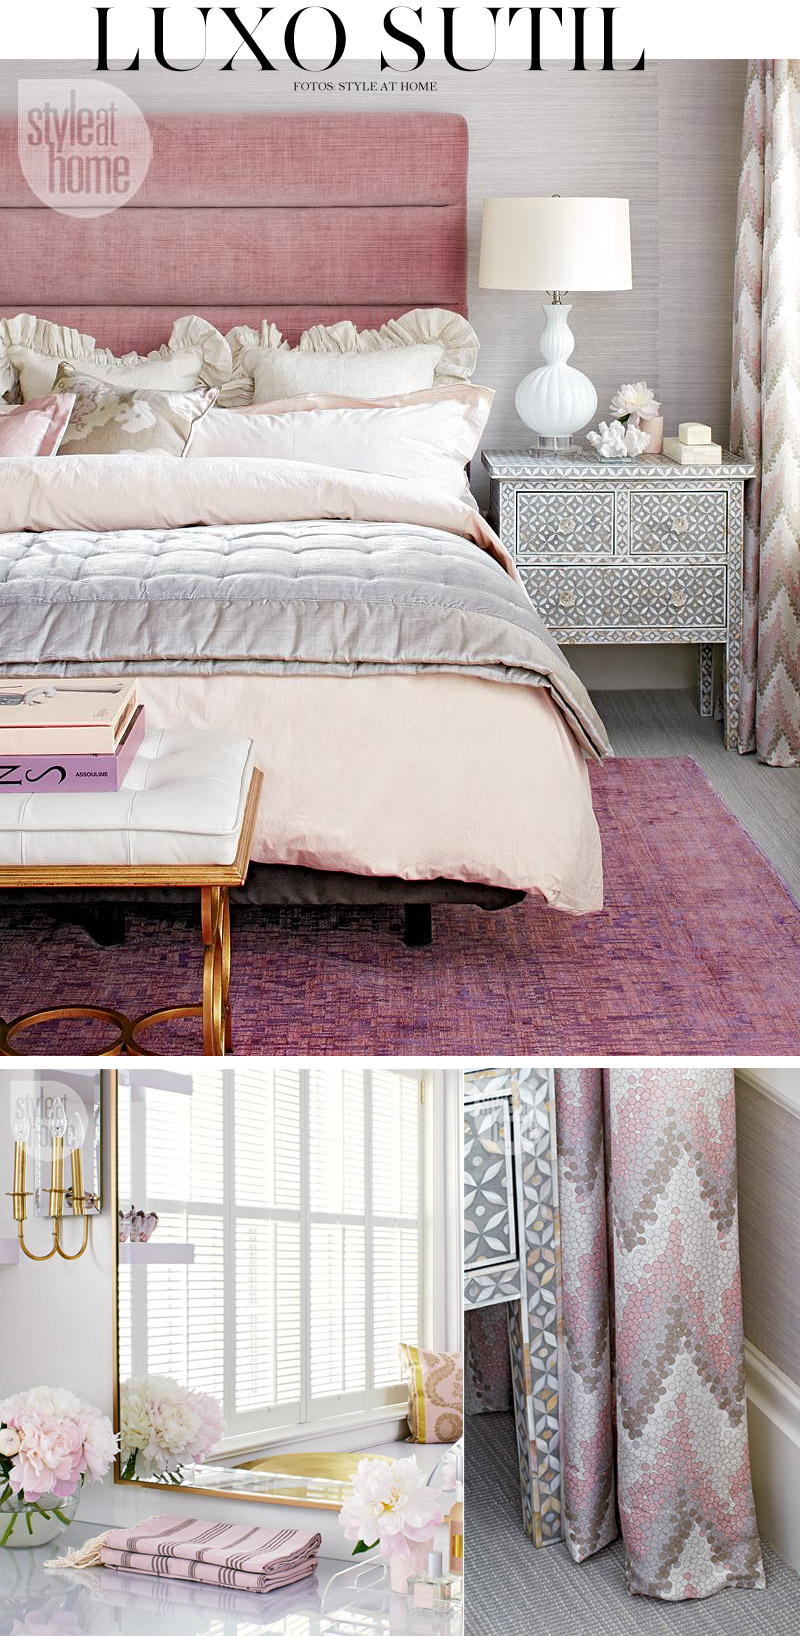 living-gazette-barbara-resende-decor-suite-lilas-rosa